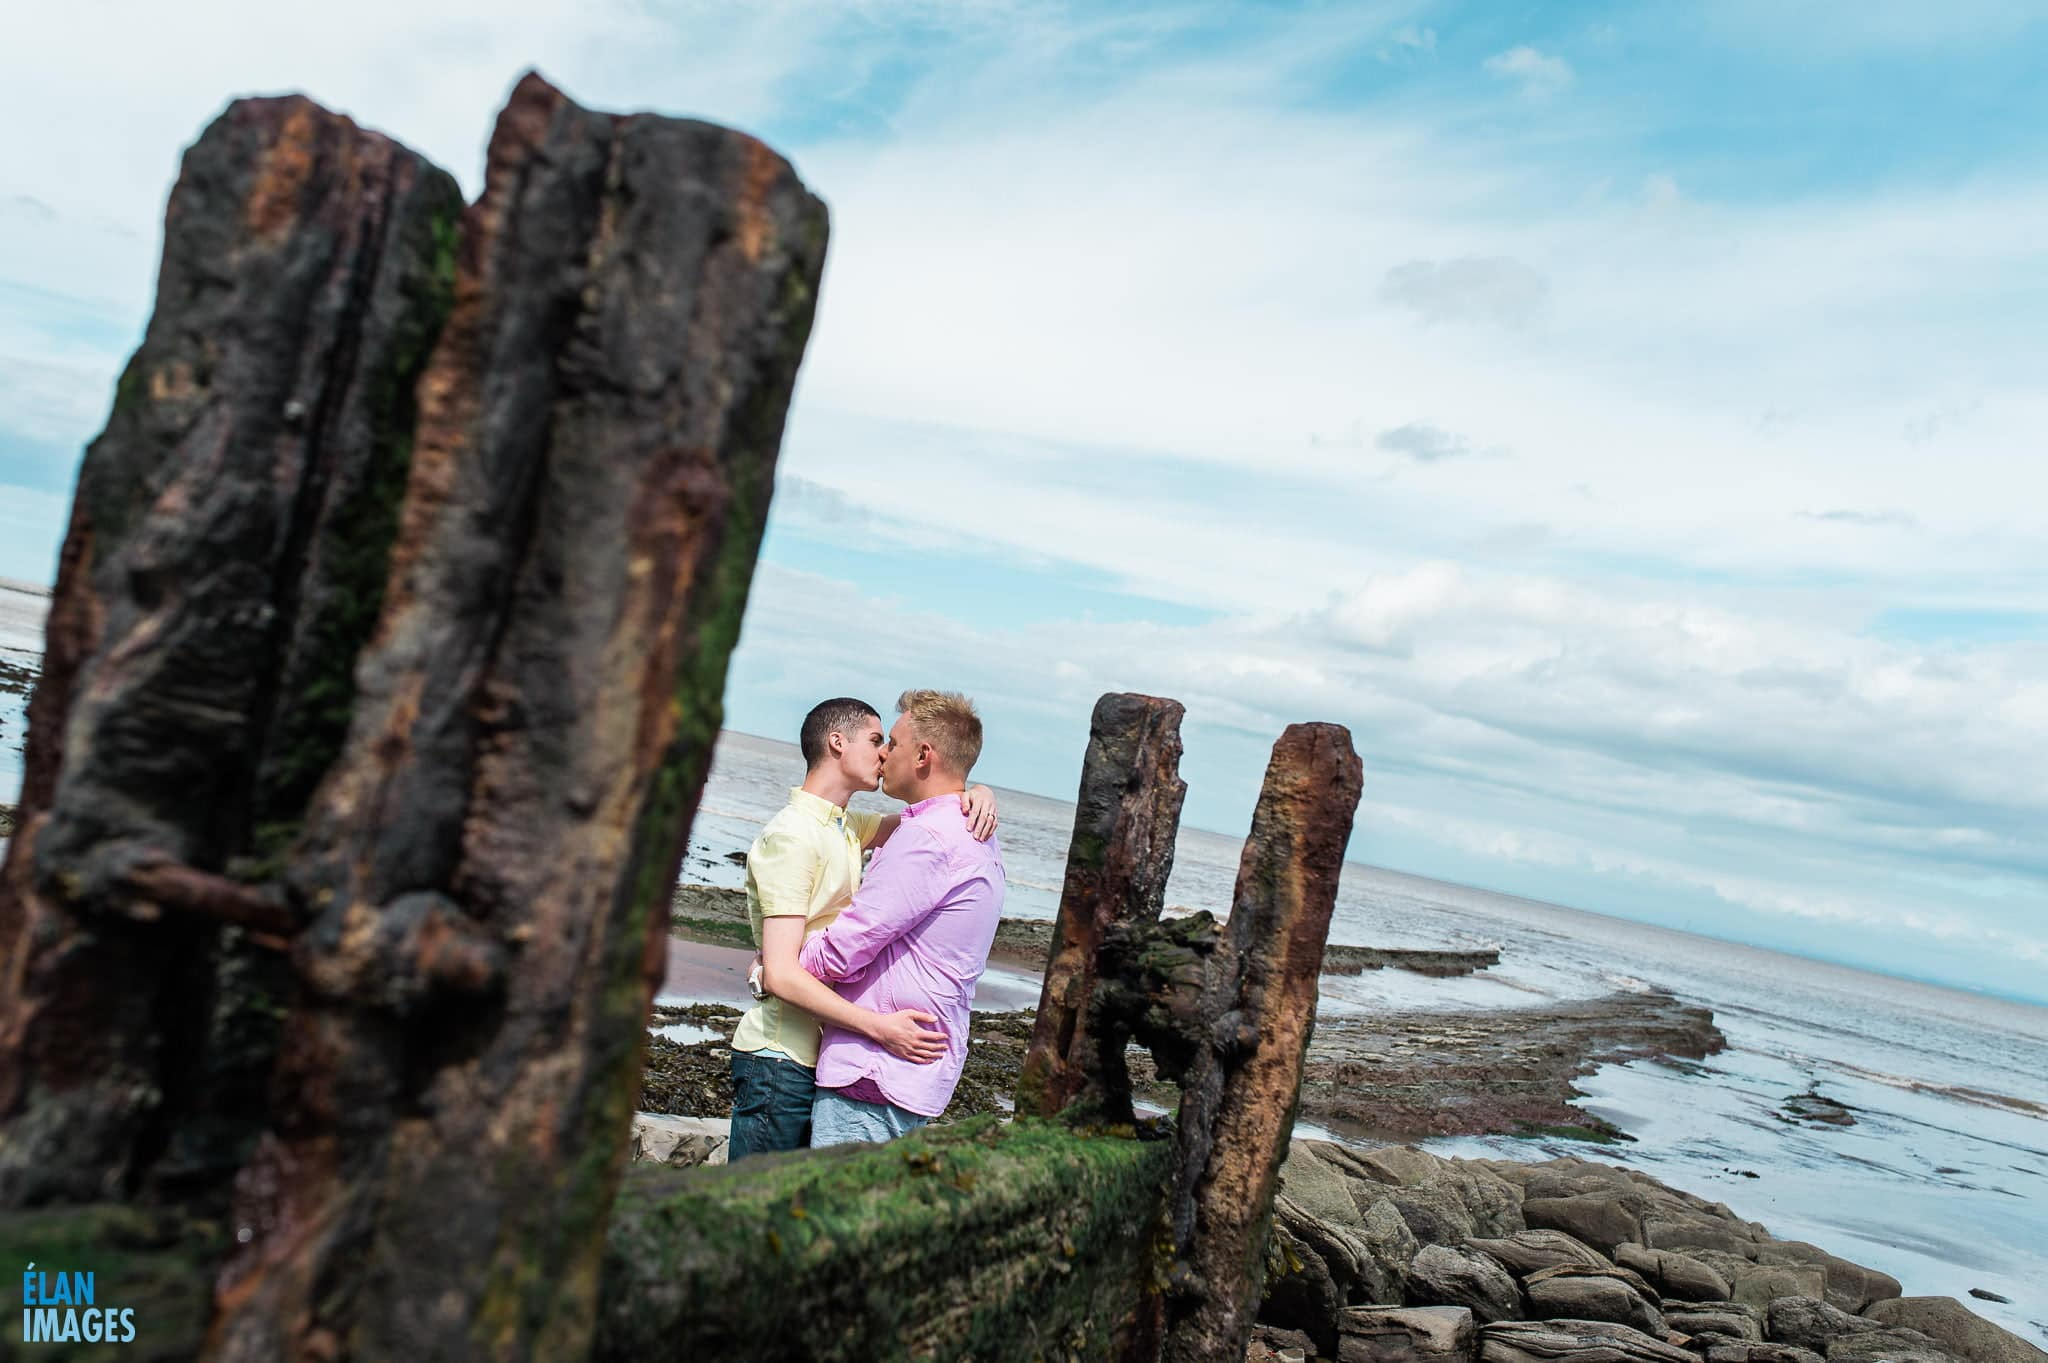 Engagement photo shoot at St Audrie's Bay, Devon 36